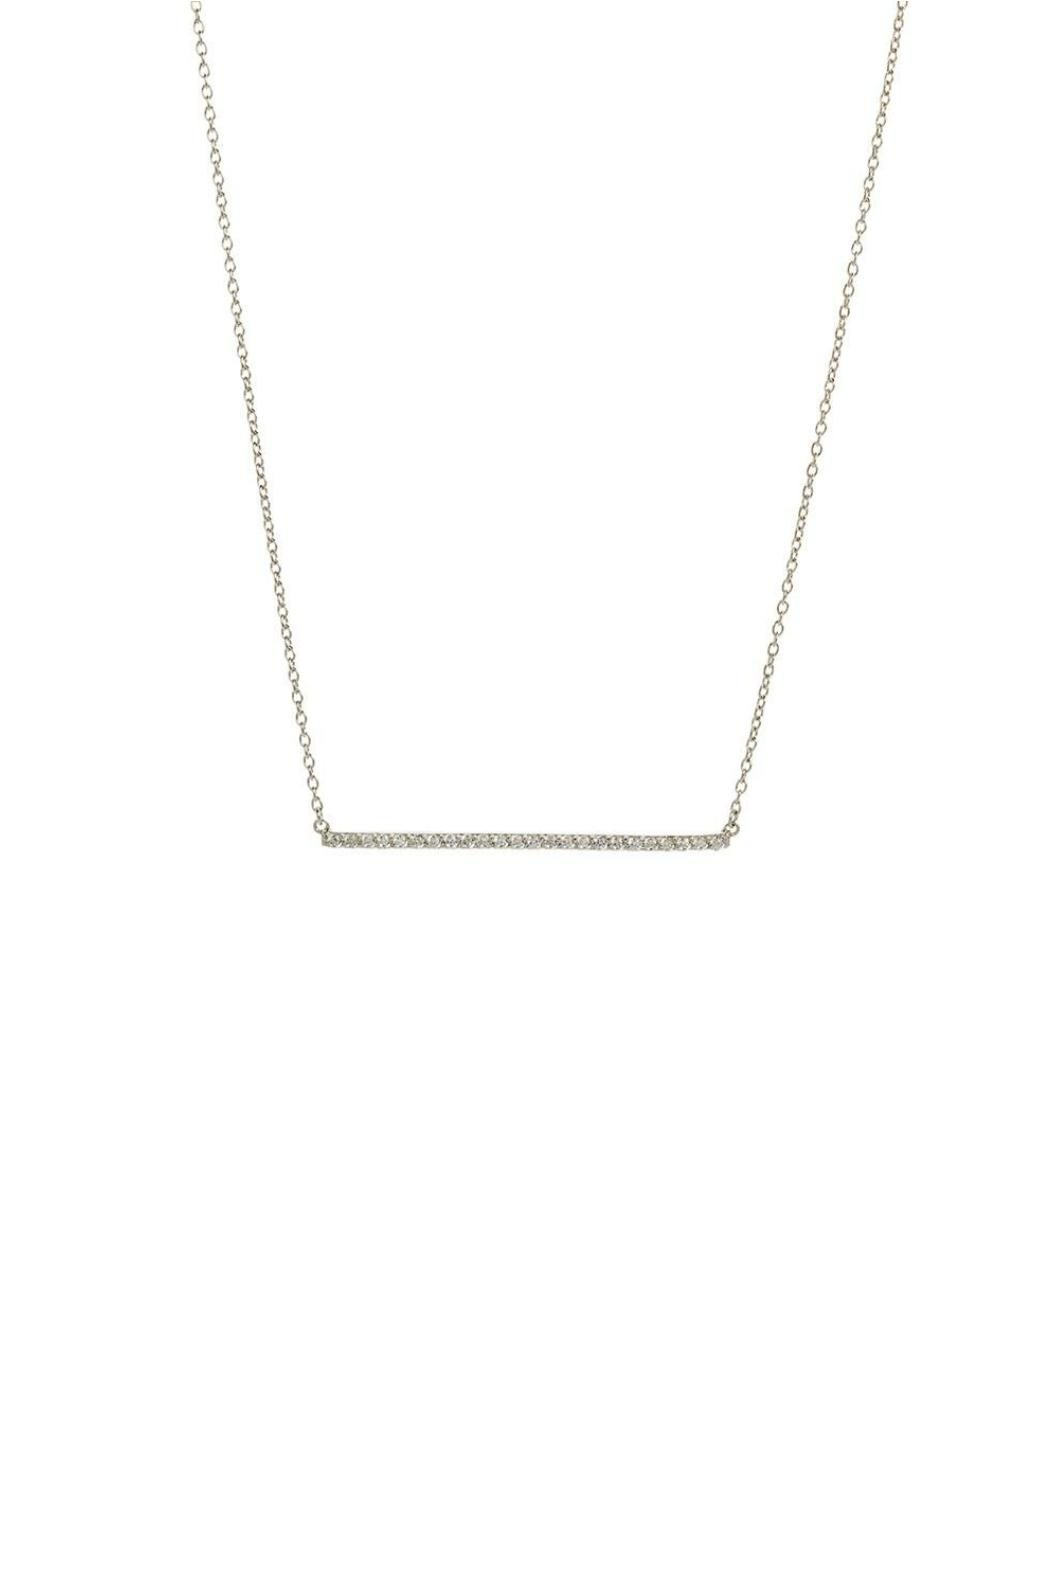 Gemma Collection Pave Bar Necklace - Main Image